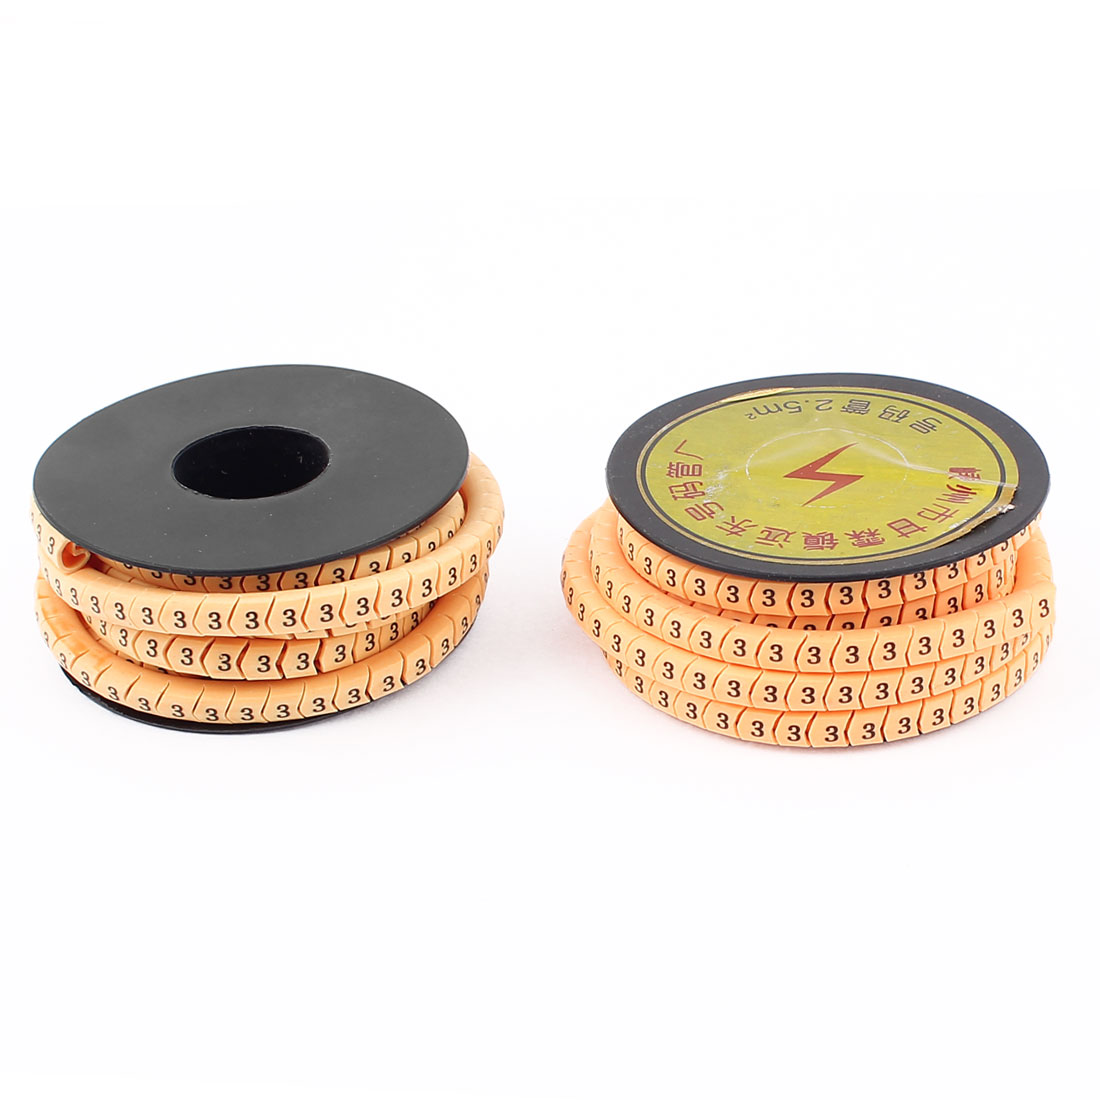 2pcs Flexible Yellow PVC Arabic Numerals 3 Printed Cable Marker Tag Label Reel Roll for 2.5mm2 Wire